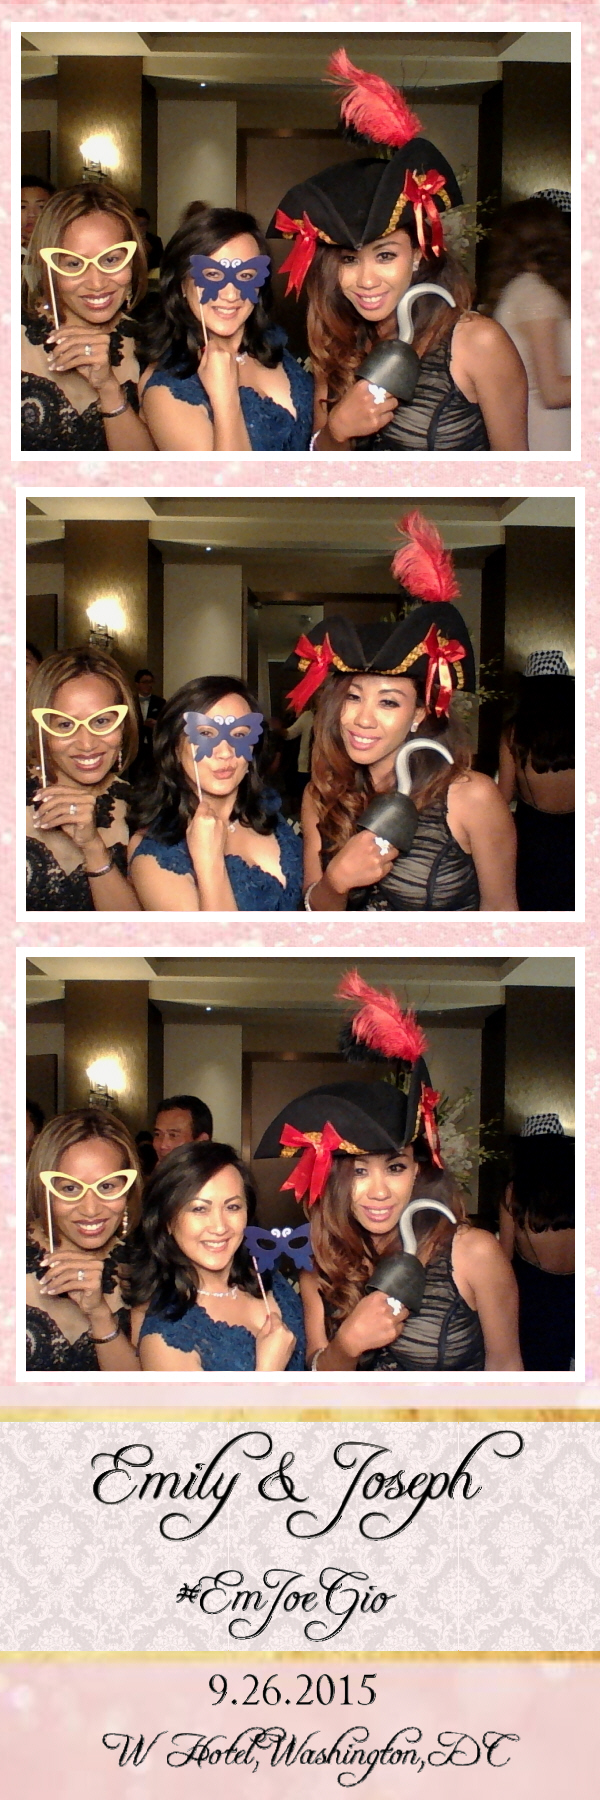 Guest House Events Photo Booth E&J (11).jpg